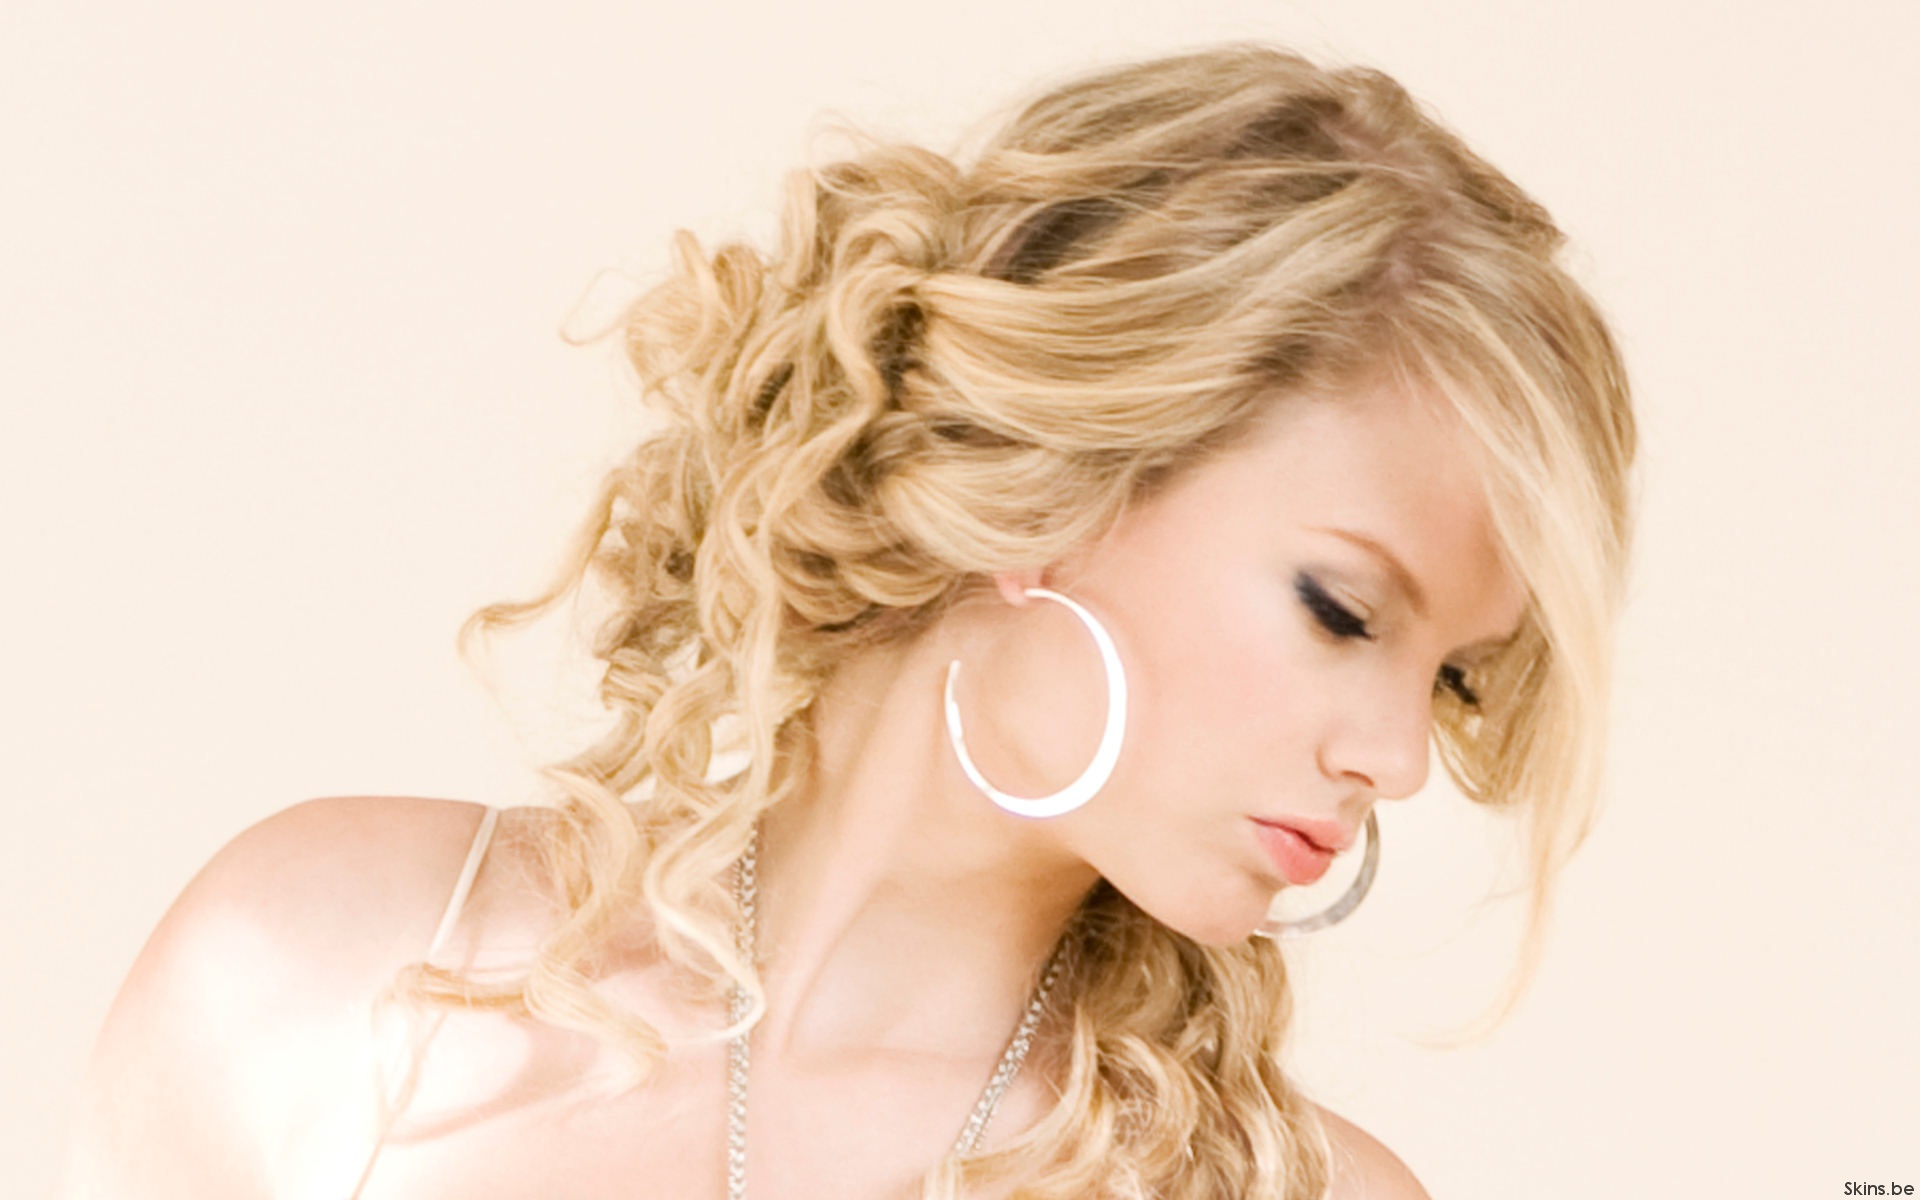 taylor swift resolution wallpaper high 1920x1200 1920x1200